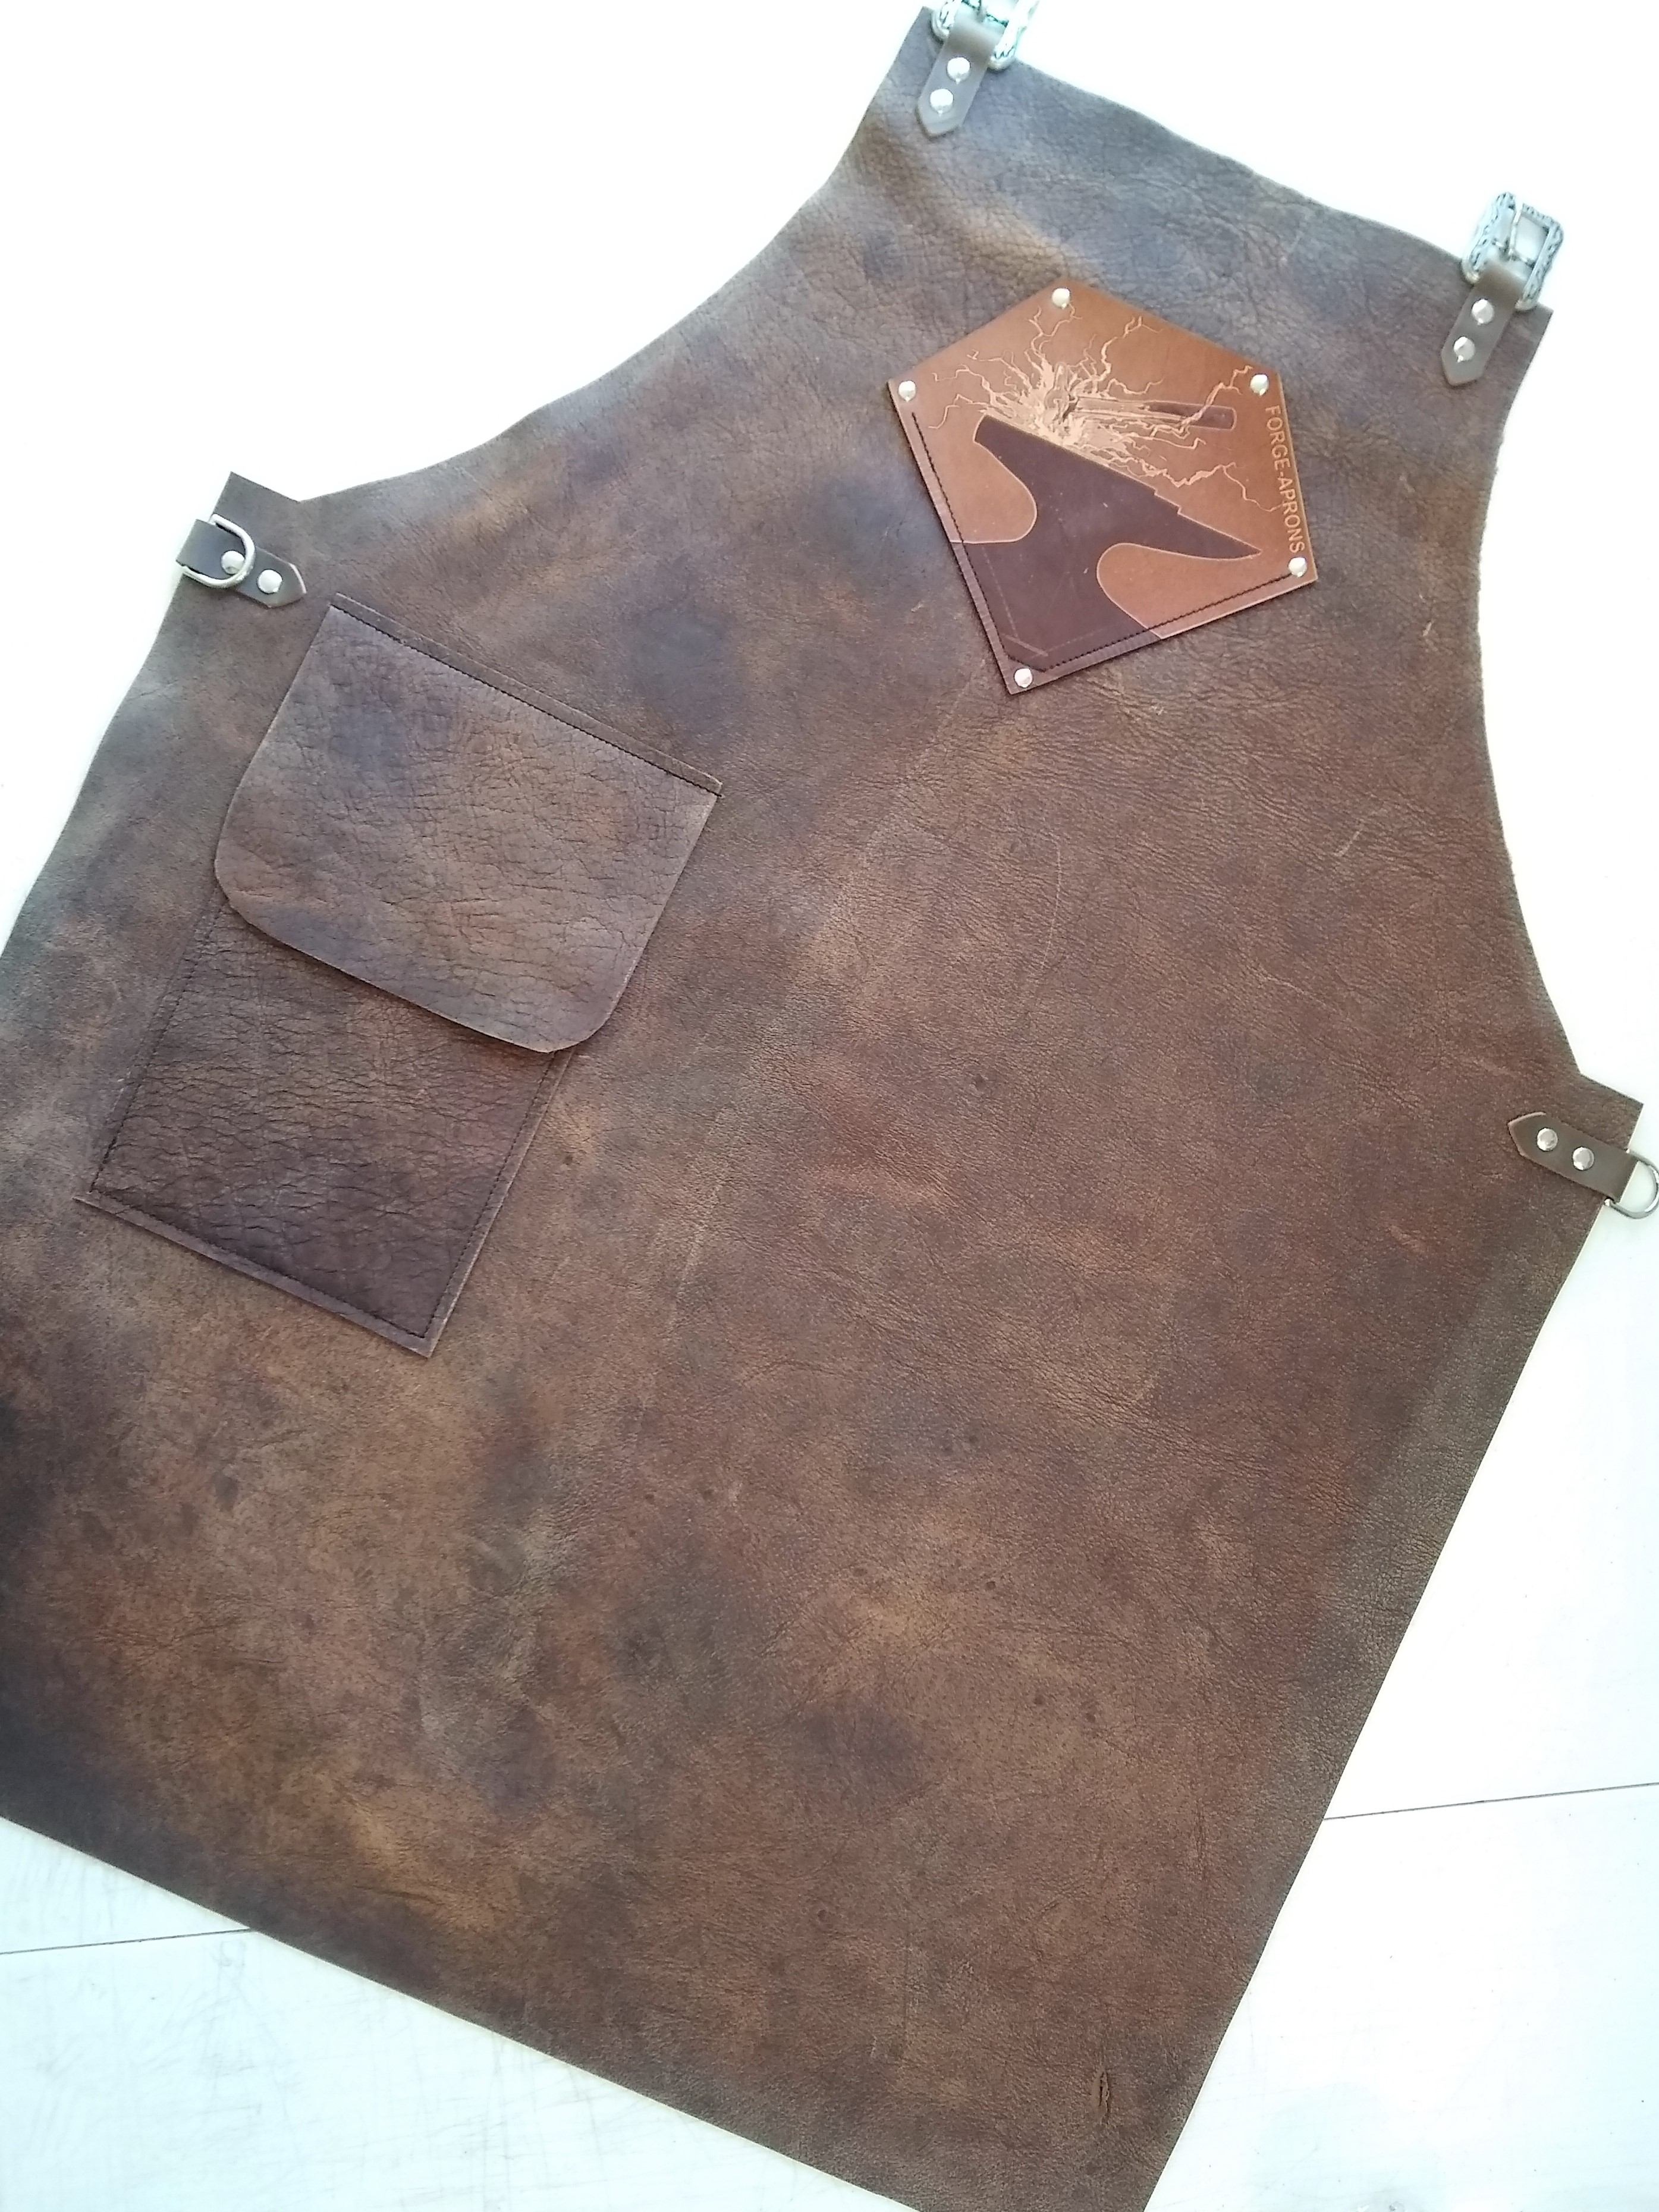 Forge Apron in optional buffalo leather